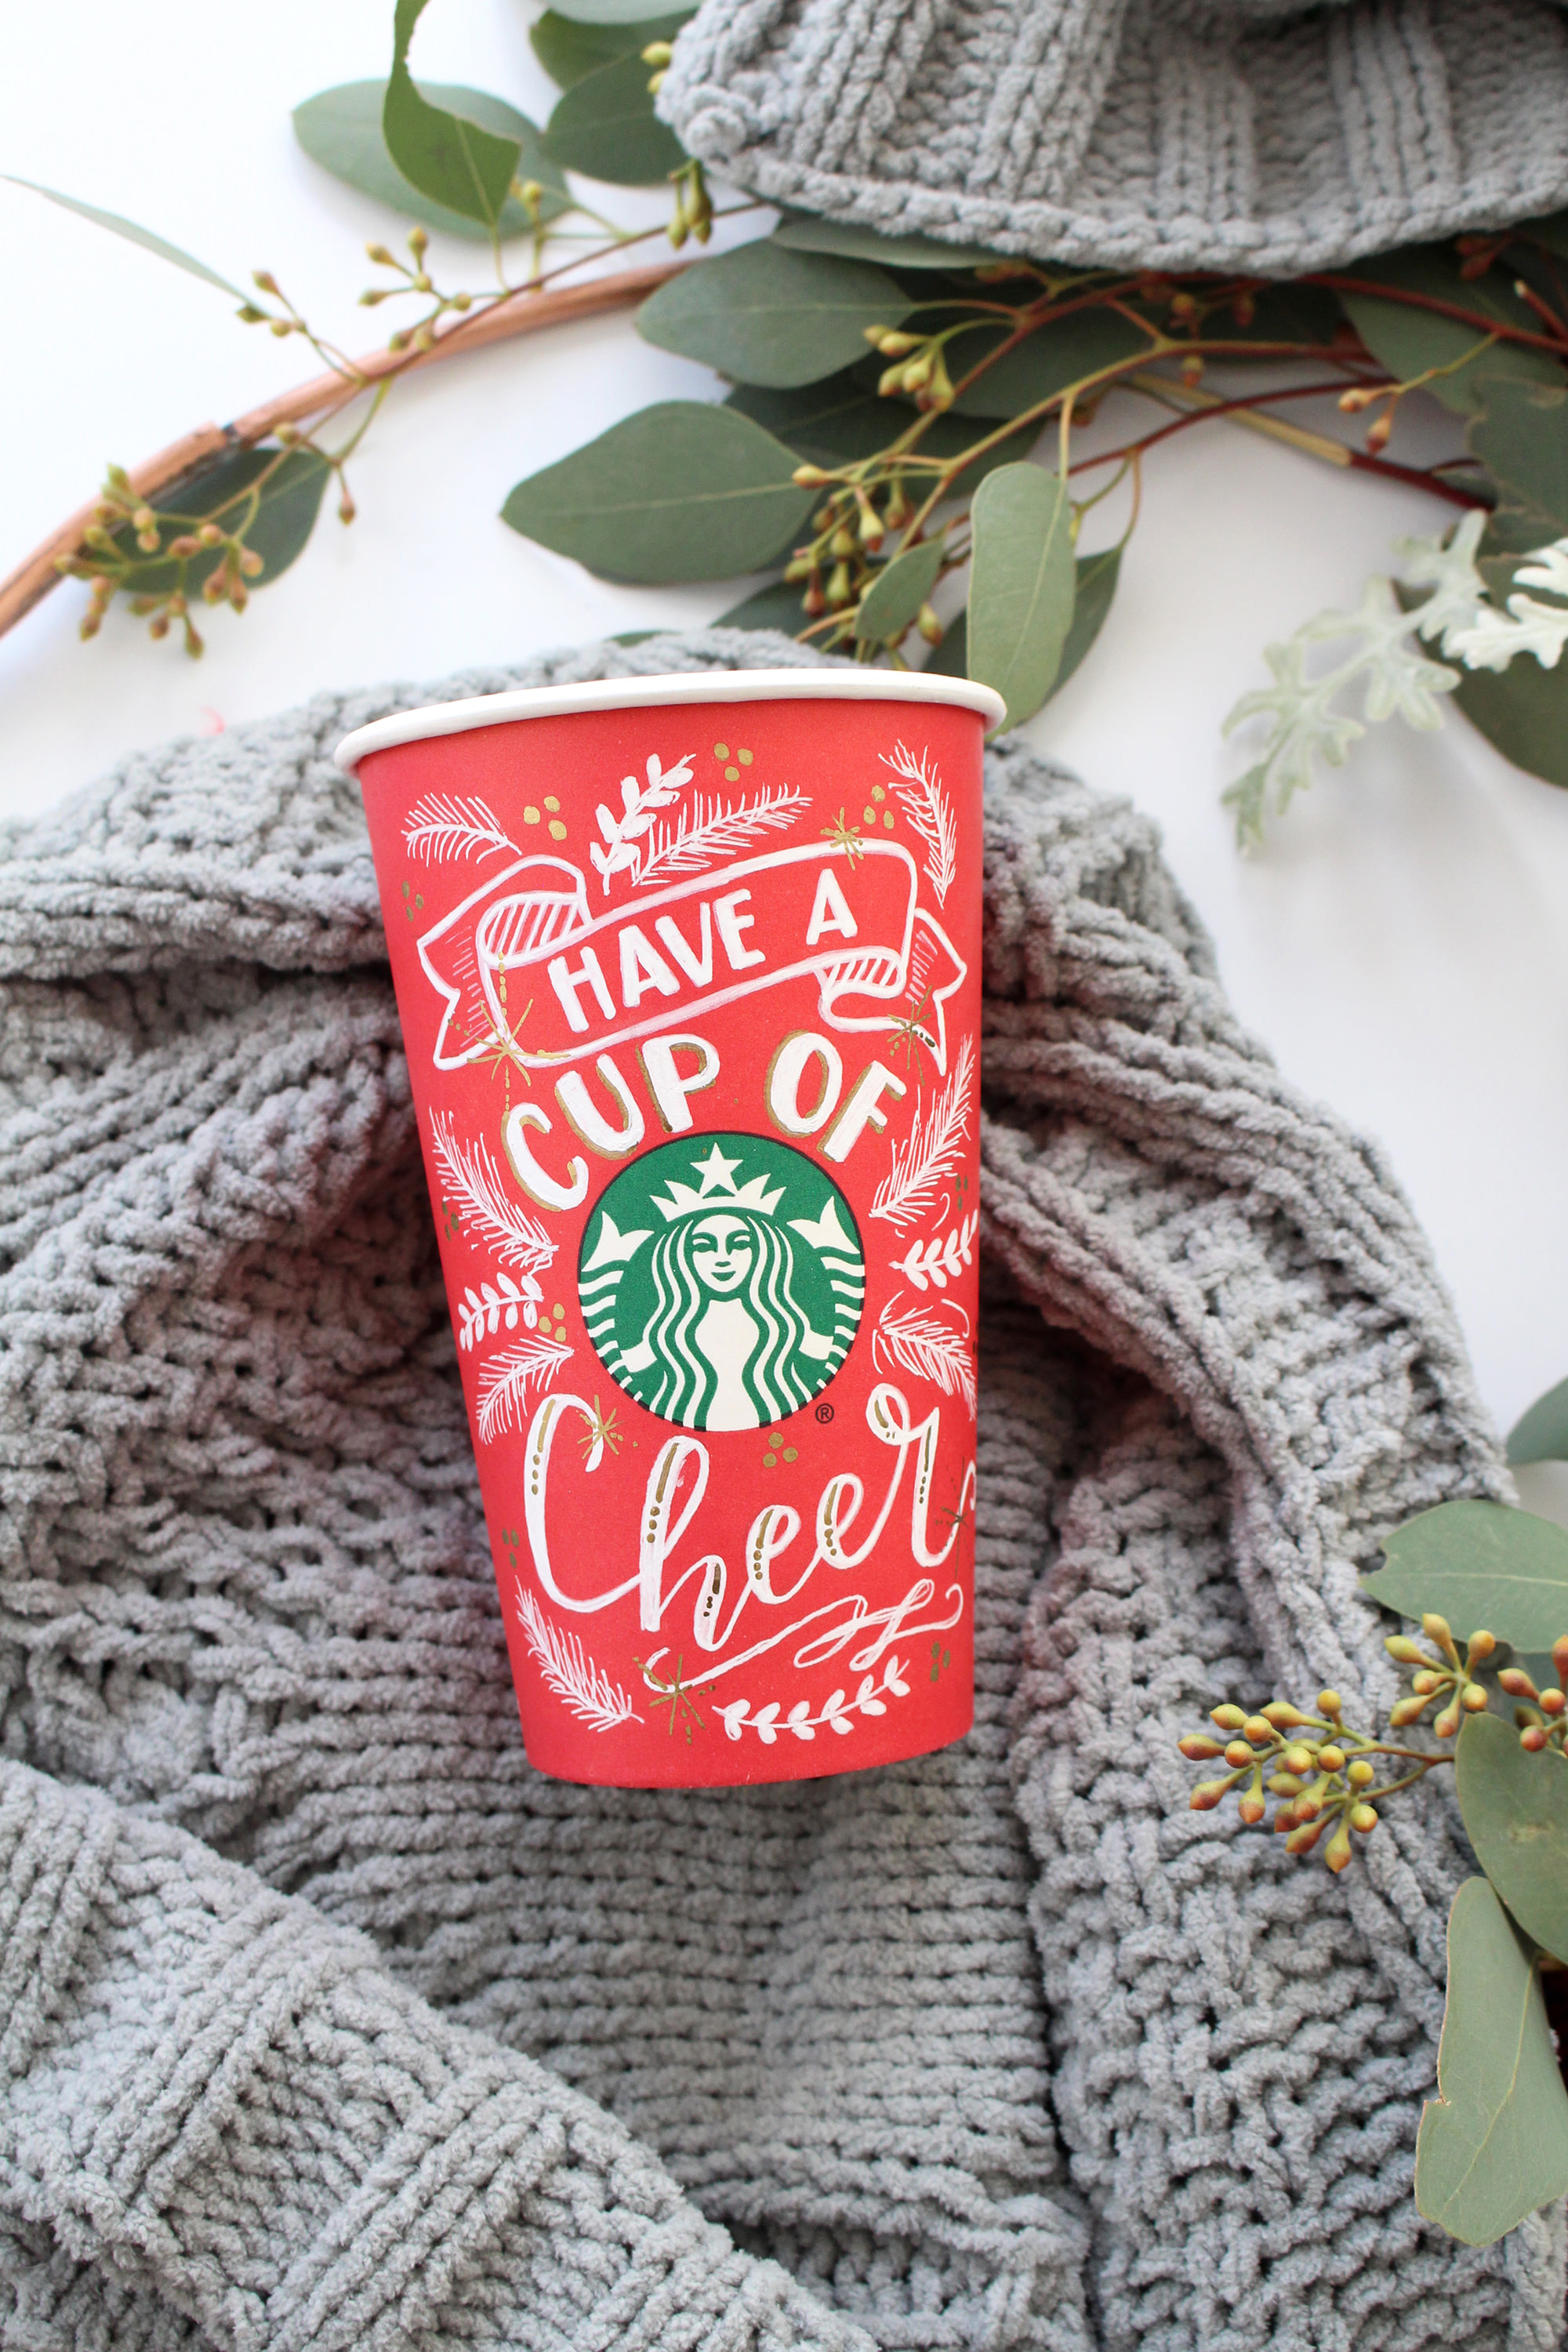 Have a cup of cheer Starbucks red cup art by Valerie McKeehan